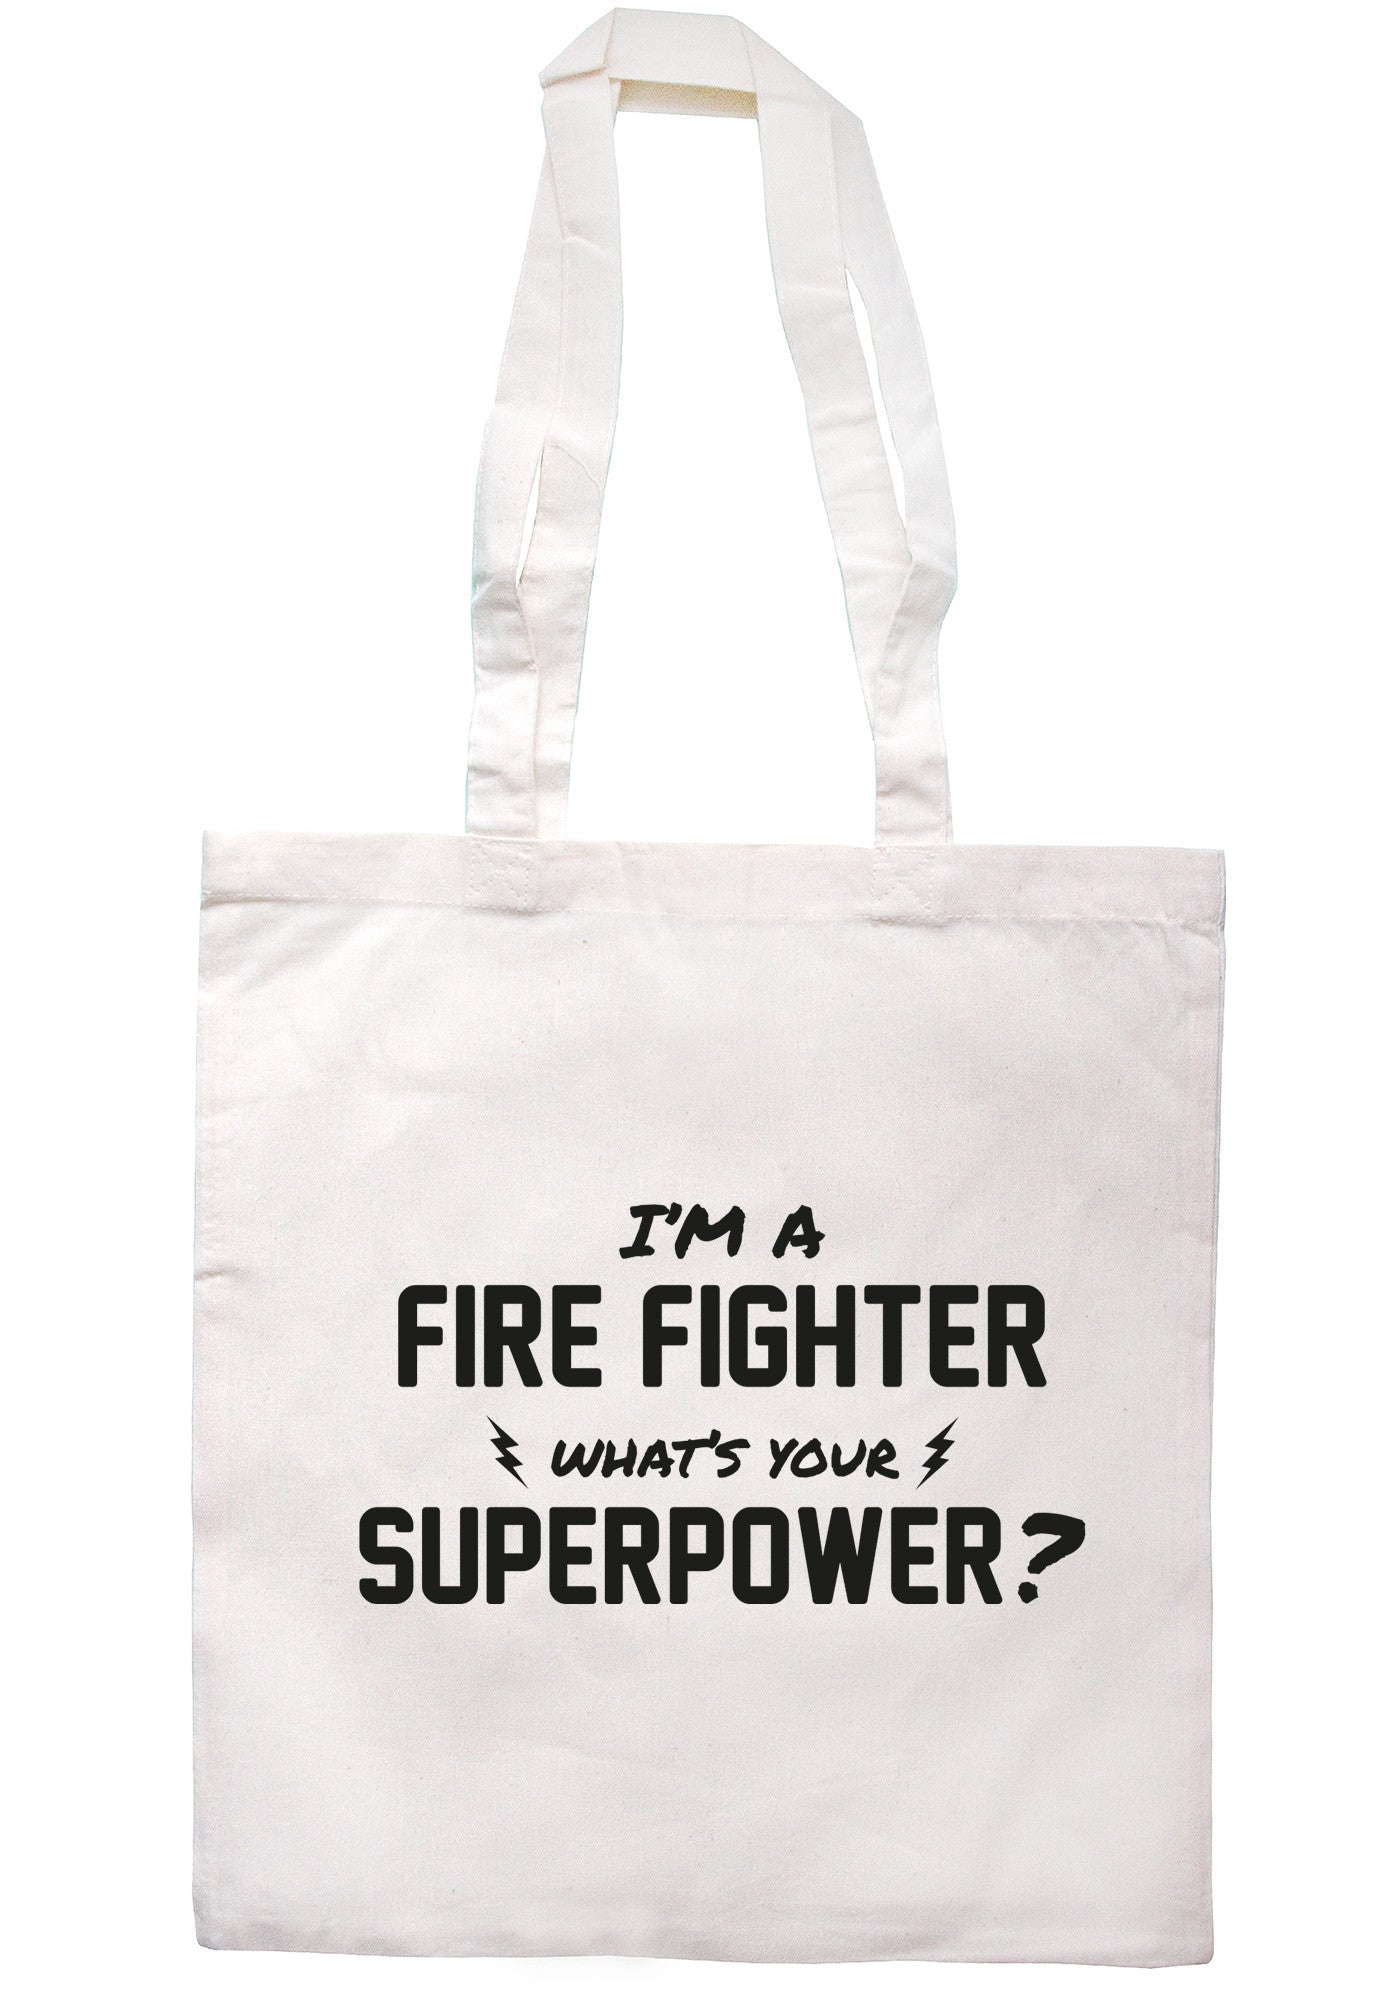 I'm A Firefighter What's Your Superpower? Tote Bag TB0519 - Illustrated Identity Ltd.